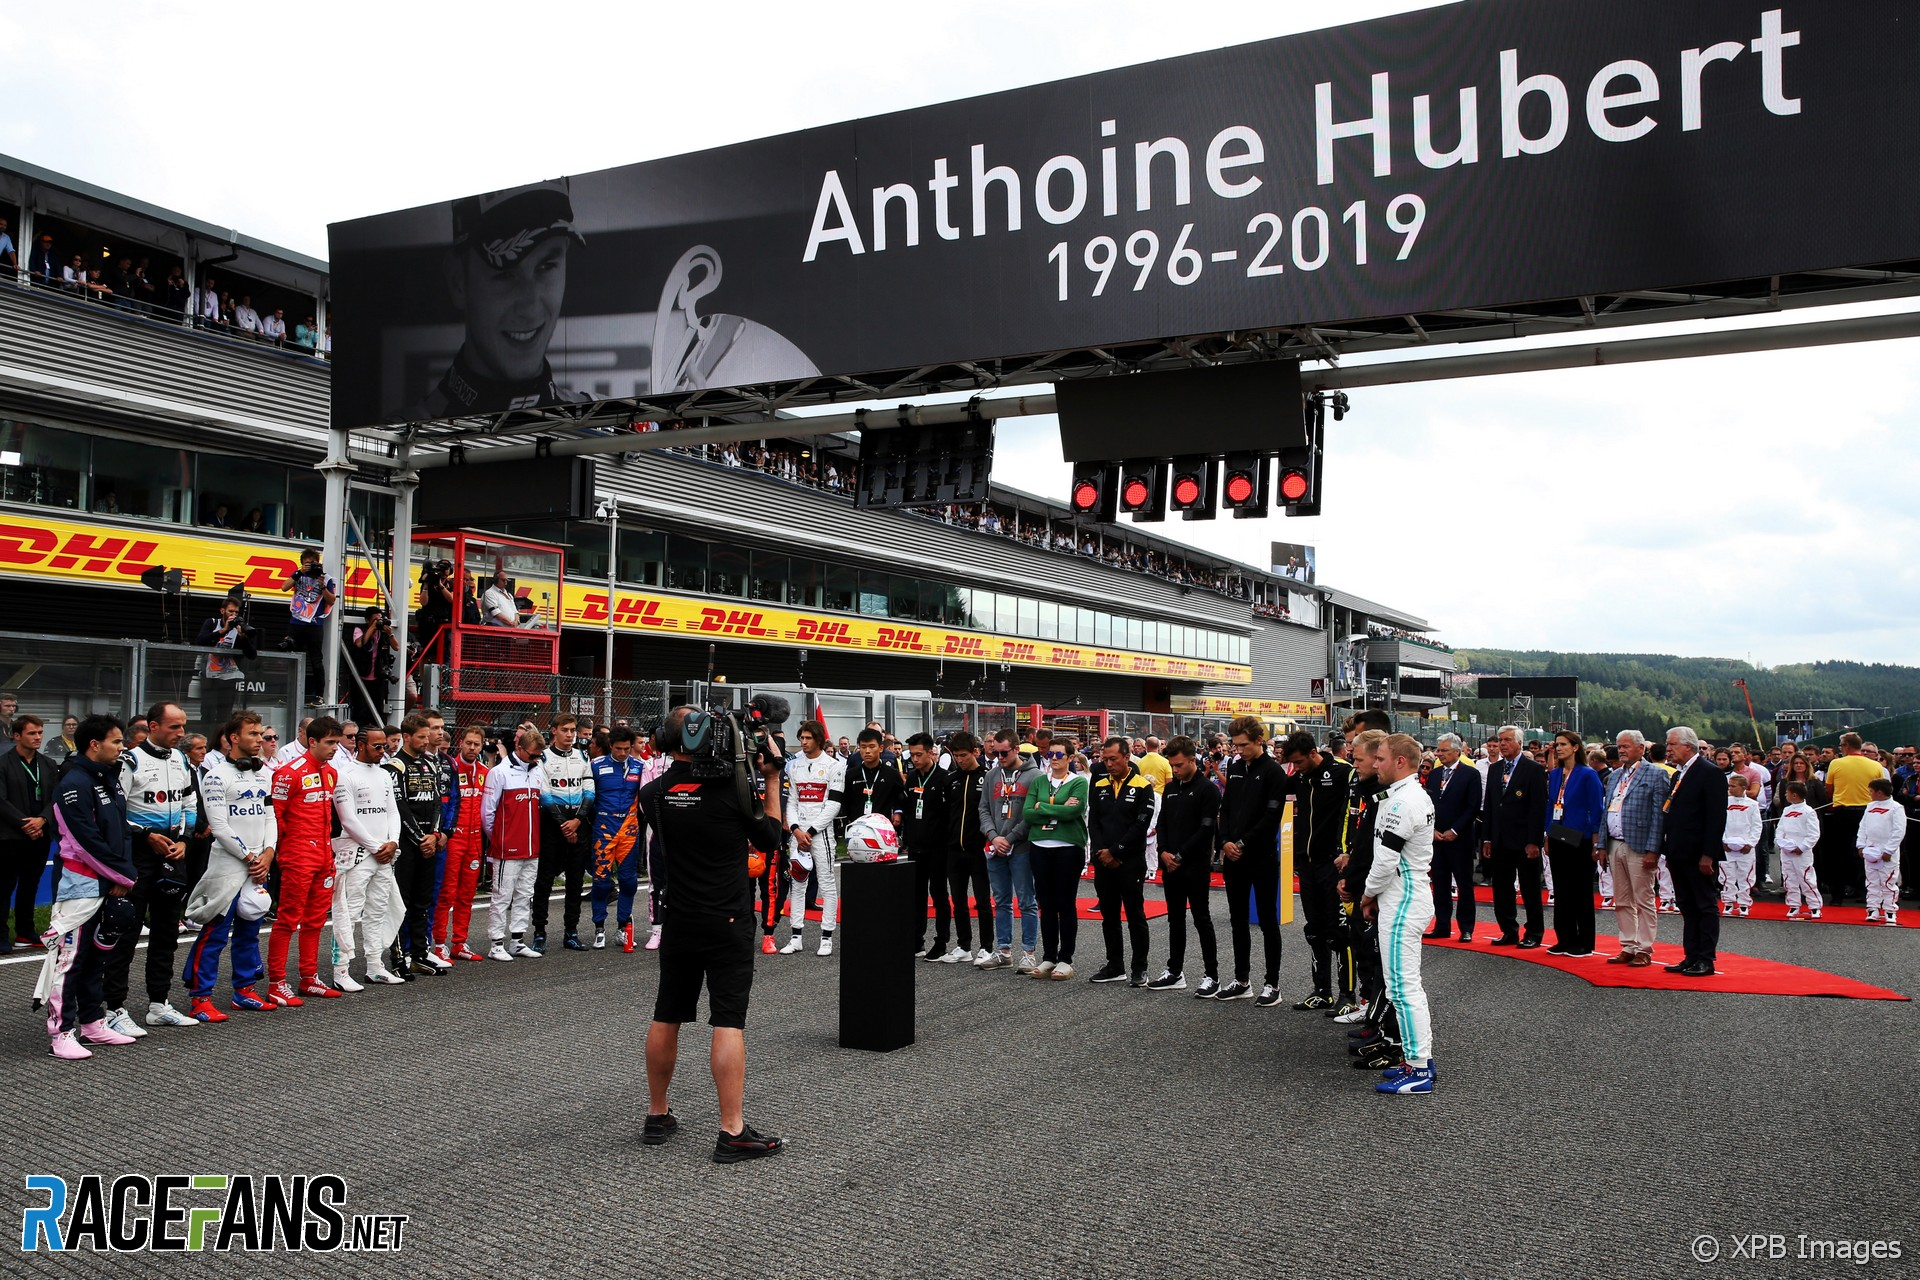 Minute's silence for Anthoine Hubert, Spa-Francorchamps, 2019